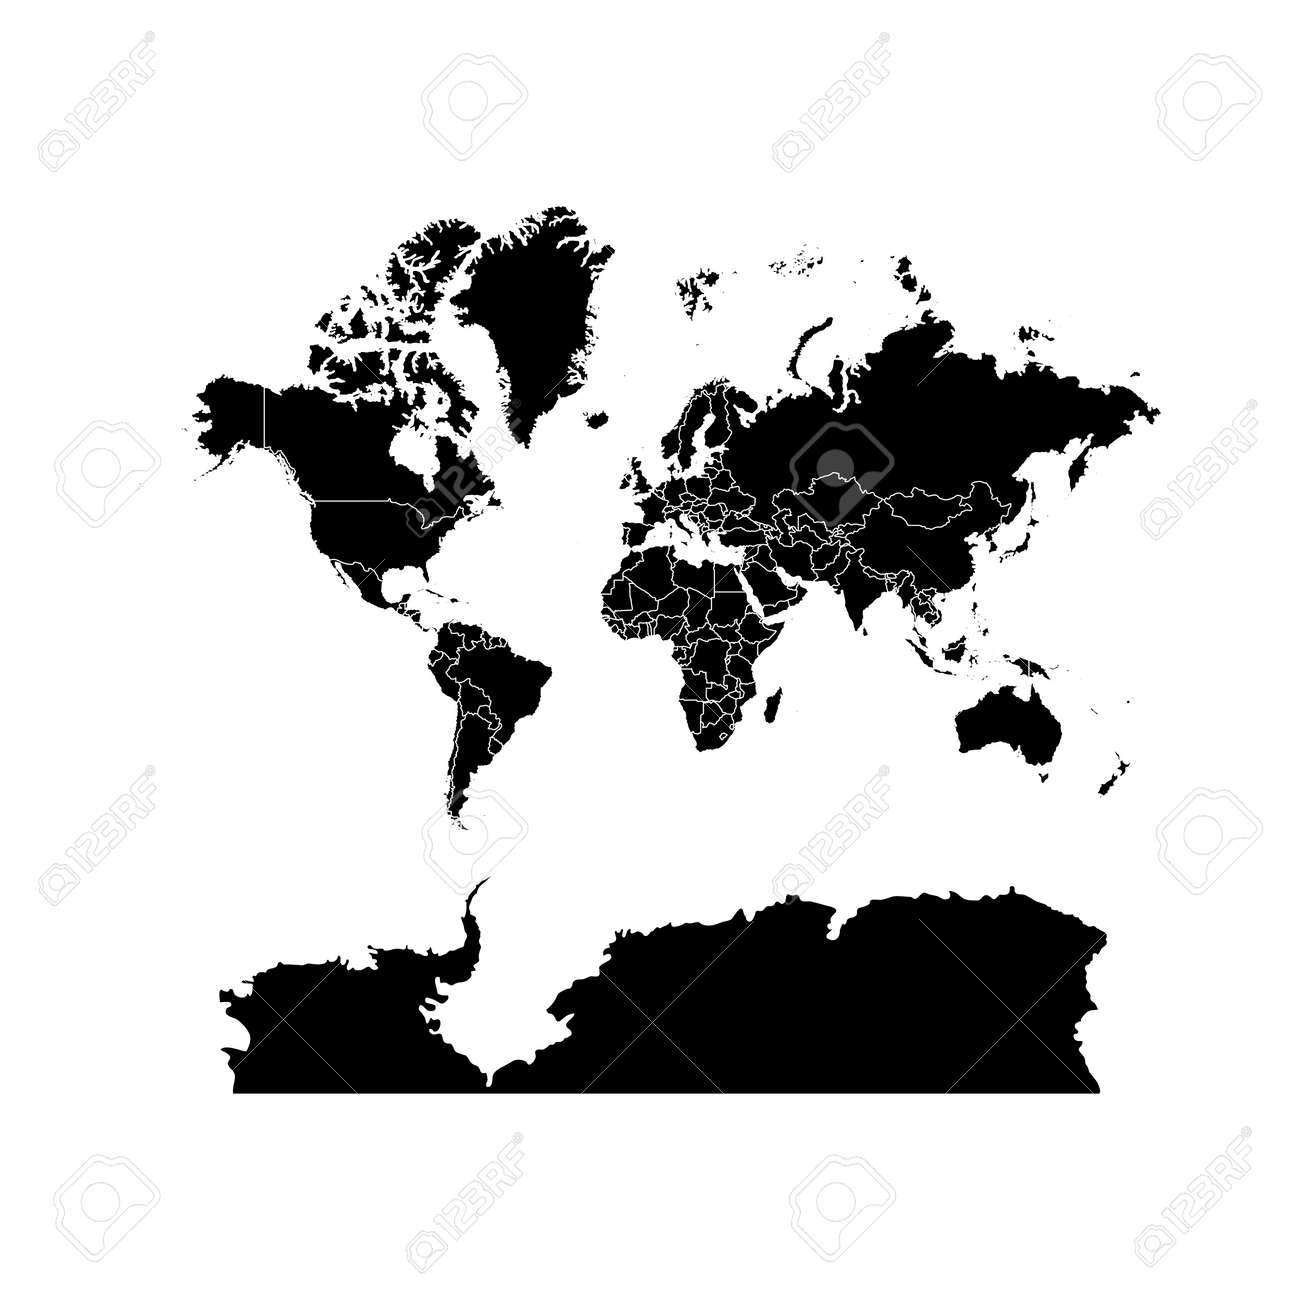 Black world map political isolated on white background worldmap black world map political isolated on white background worldmap vector template flat world gumiabroncs Gallery